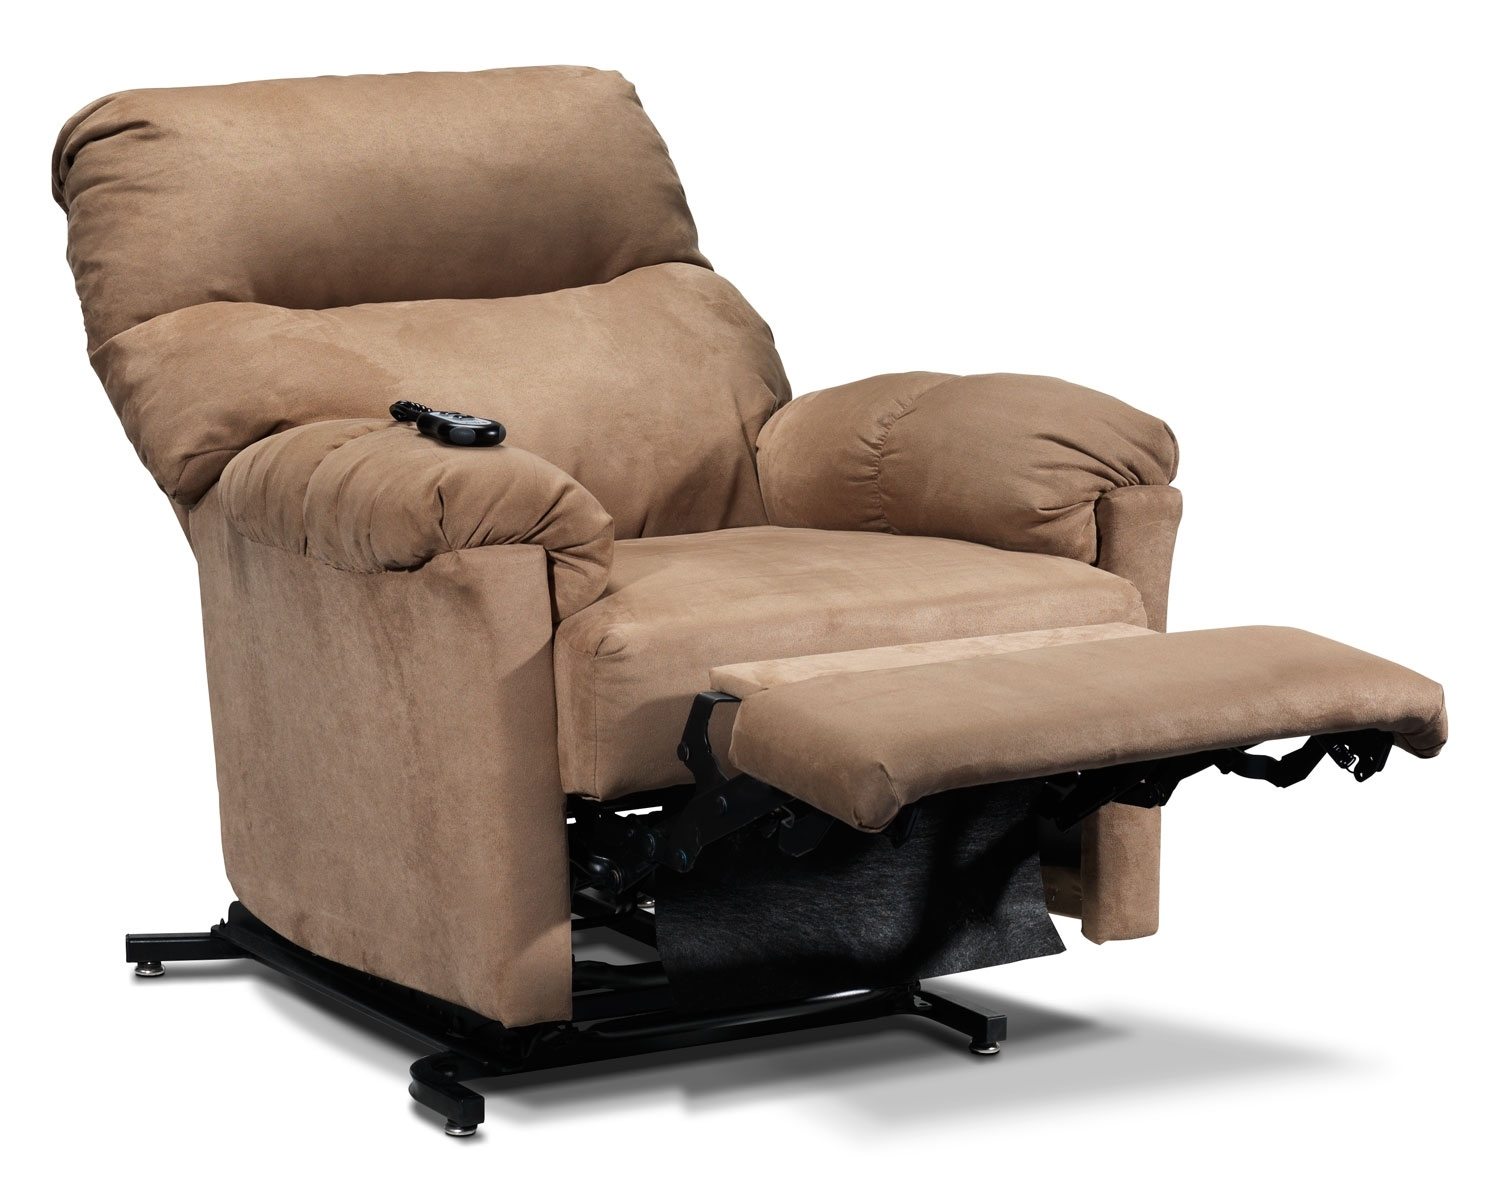 lift stellar for ultracomfort comfort m comforter america ultra chair unique recliner